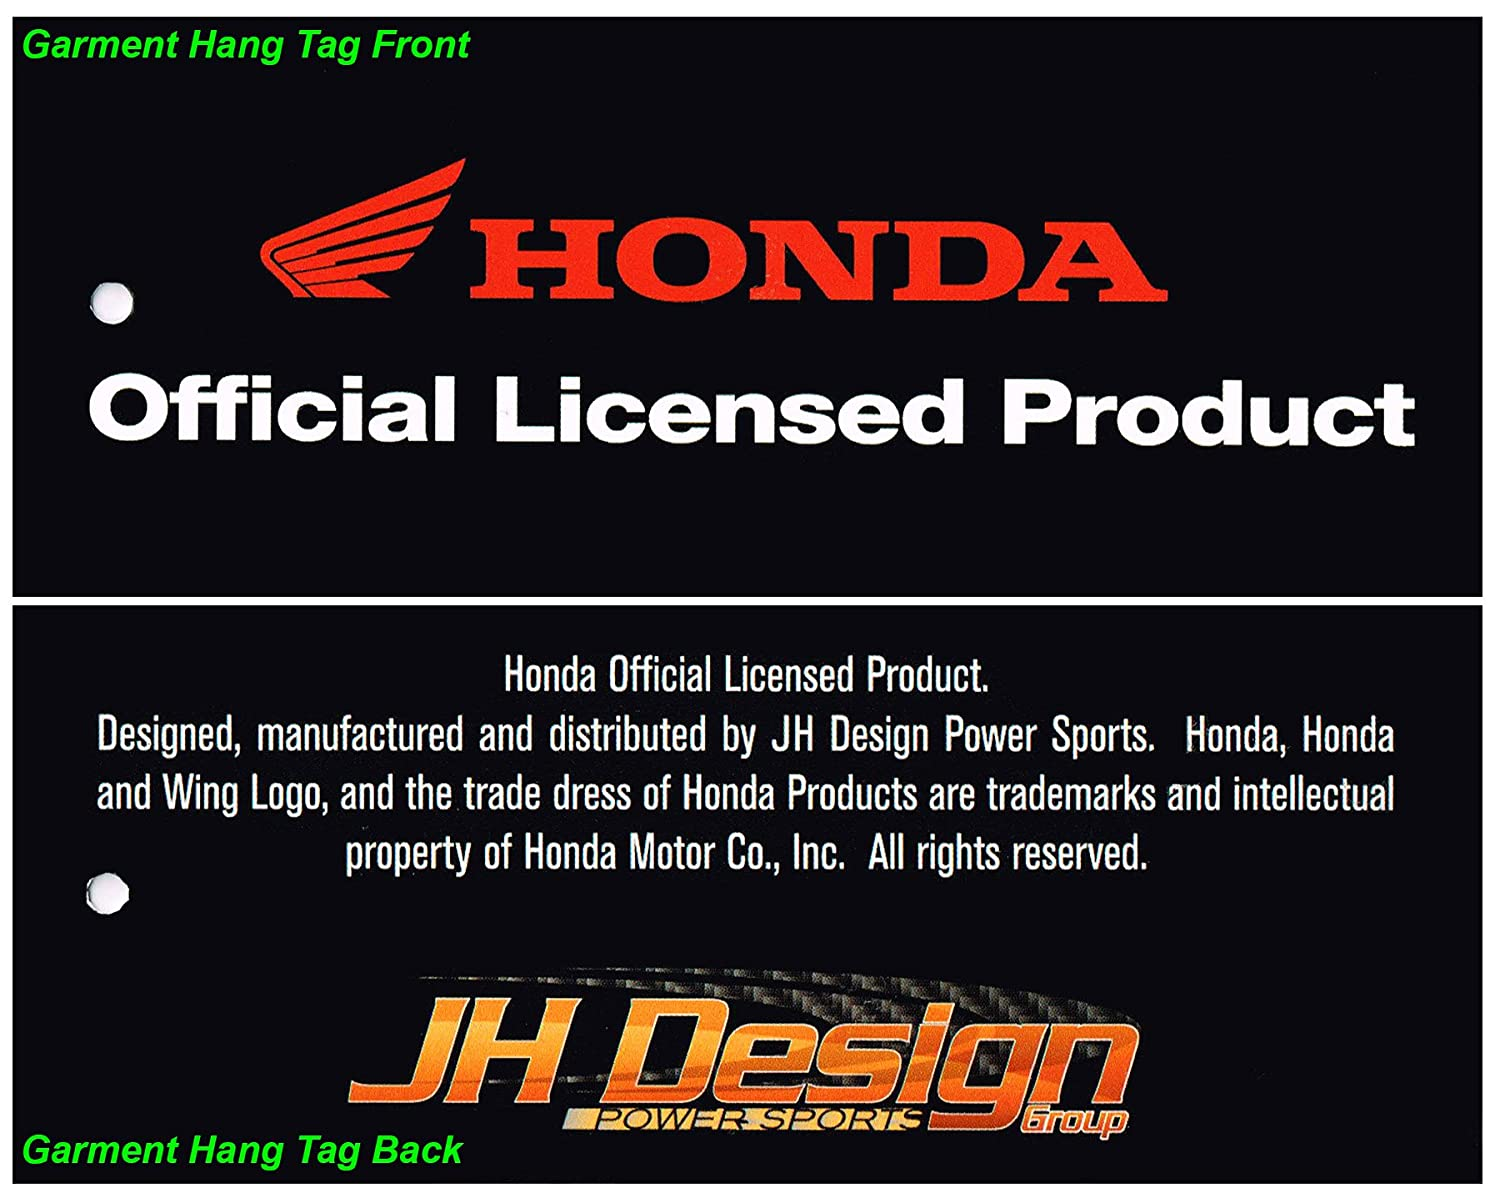 JH DESIGN GROUP Men/'s Honda Hoodie with Multiple Logos a Sweatshirt for Men HON903RAC4